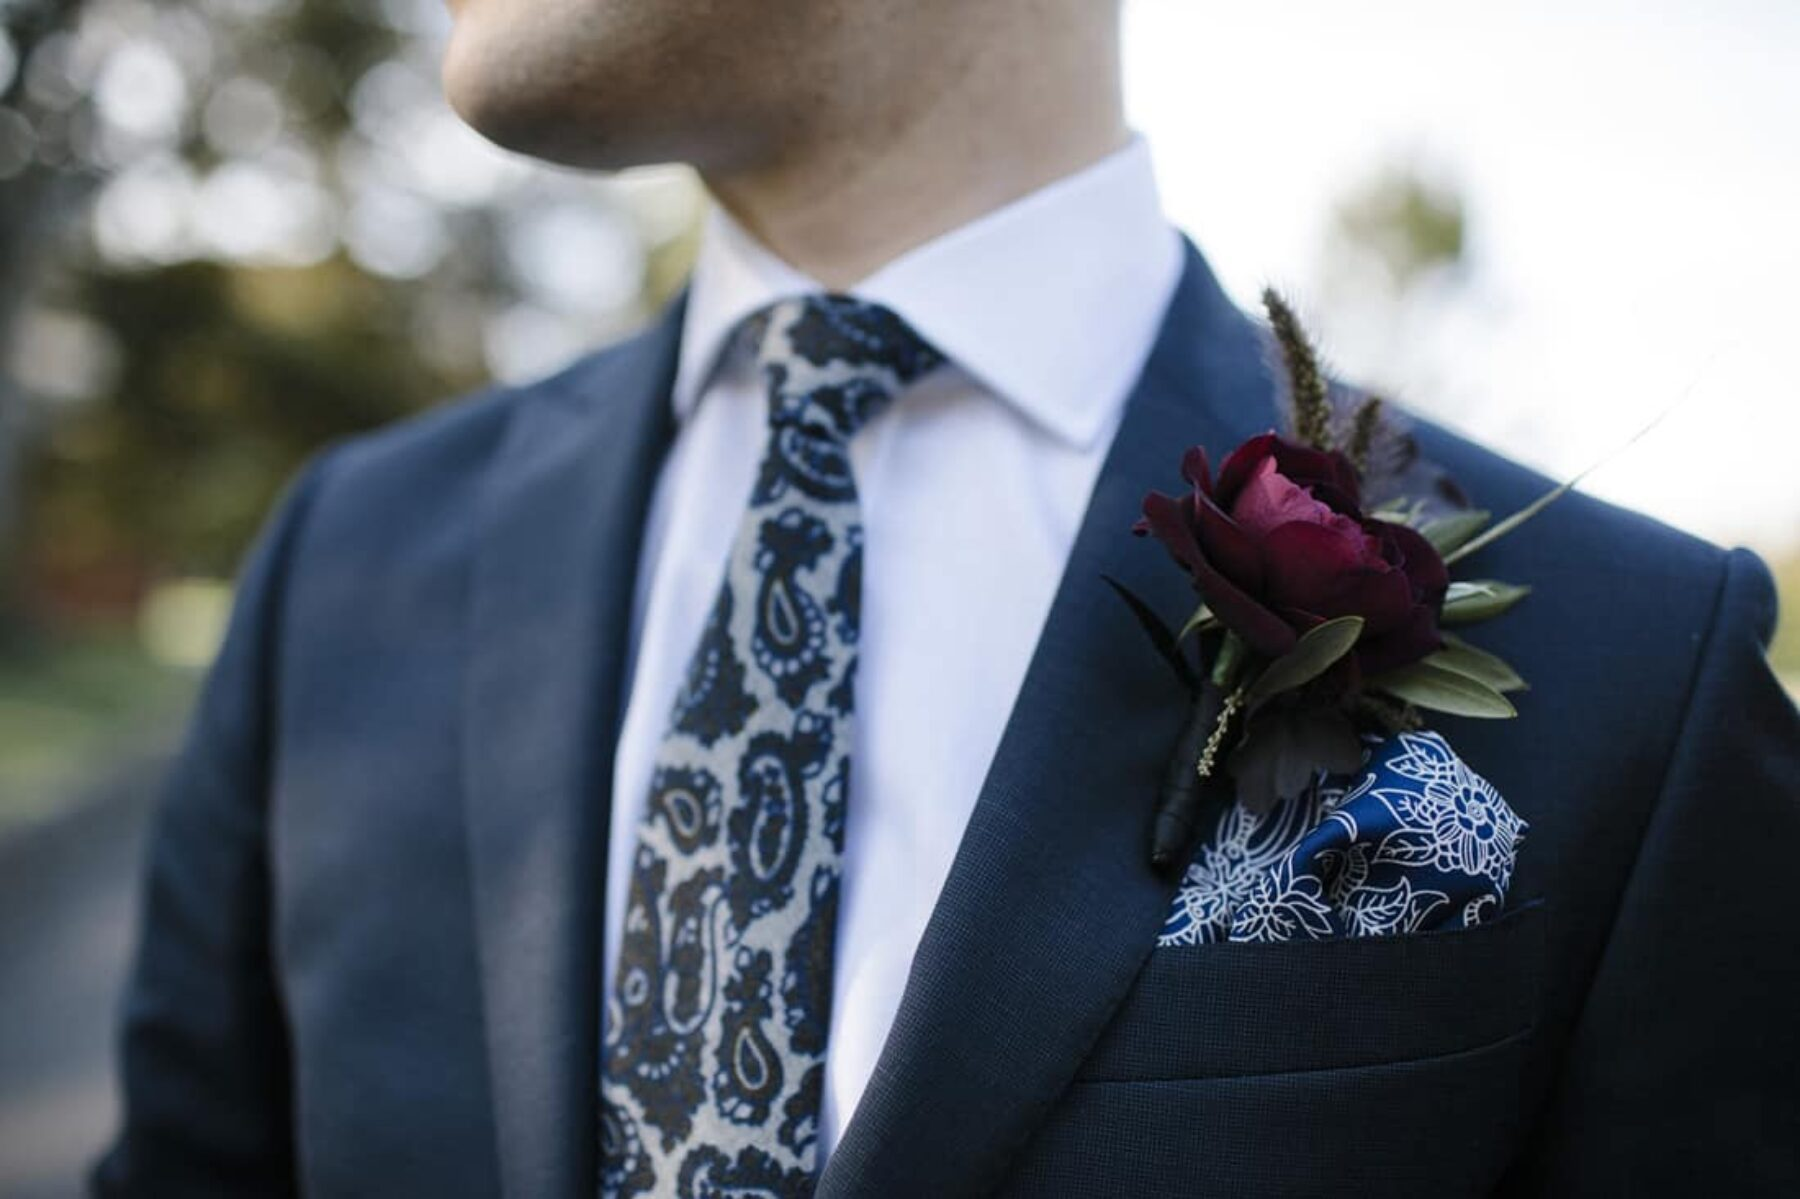 Stylish groom with paisley tie and pocket square